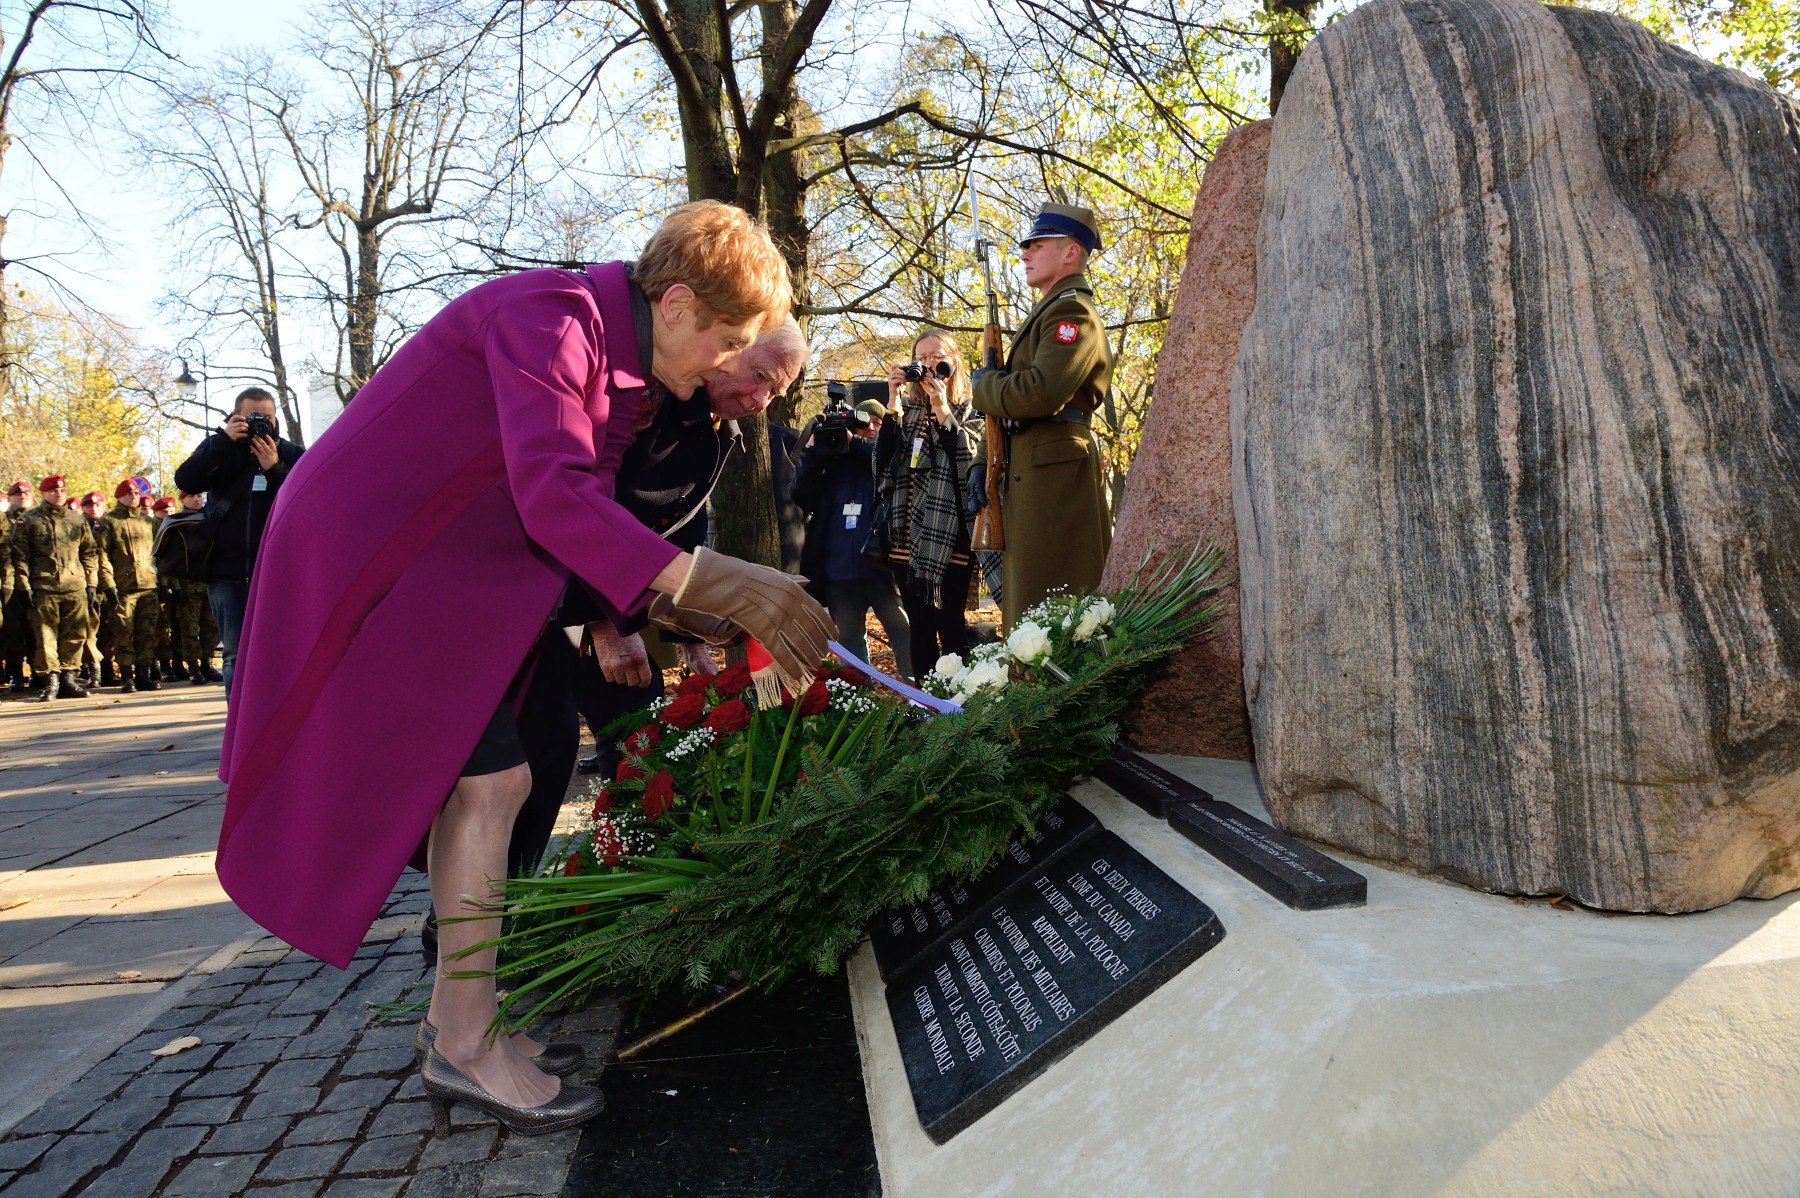 Their Excellencies laid a wreath at the Two Rocks Memorial to honour Canadian and Polish soldiers who fought side by side during World War II.